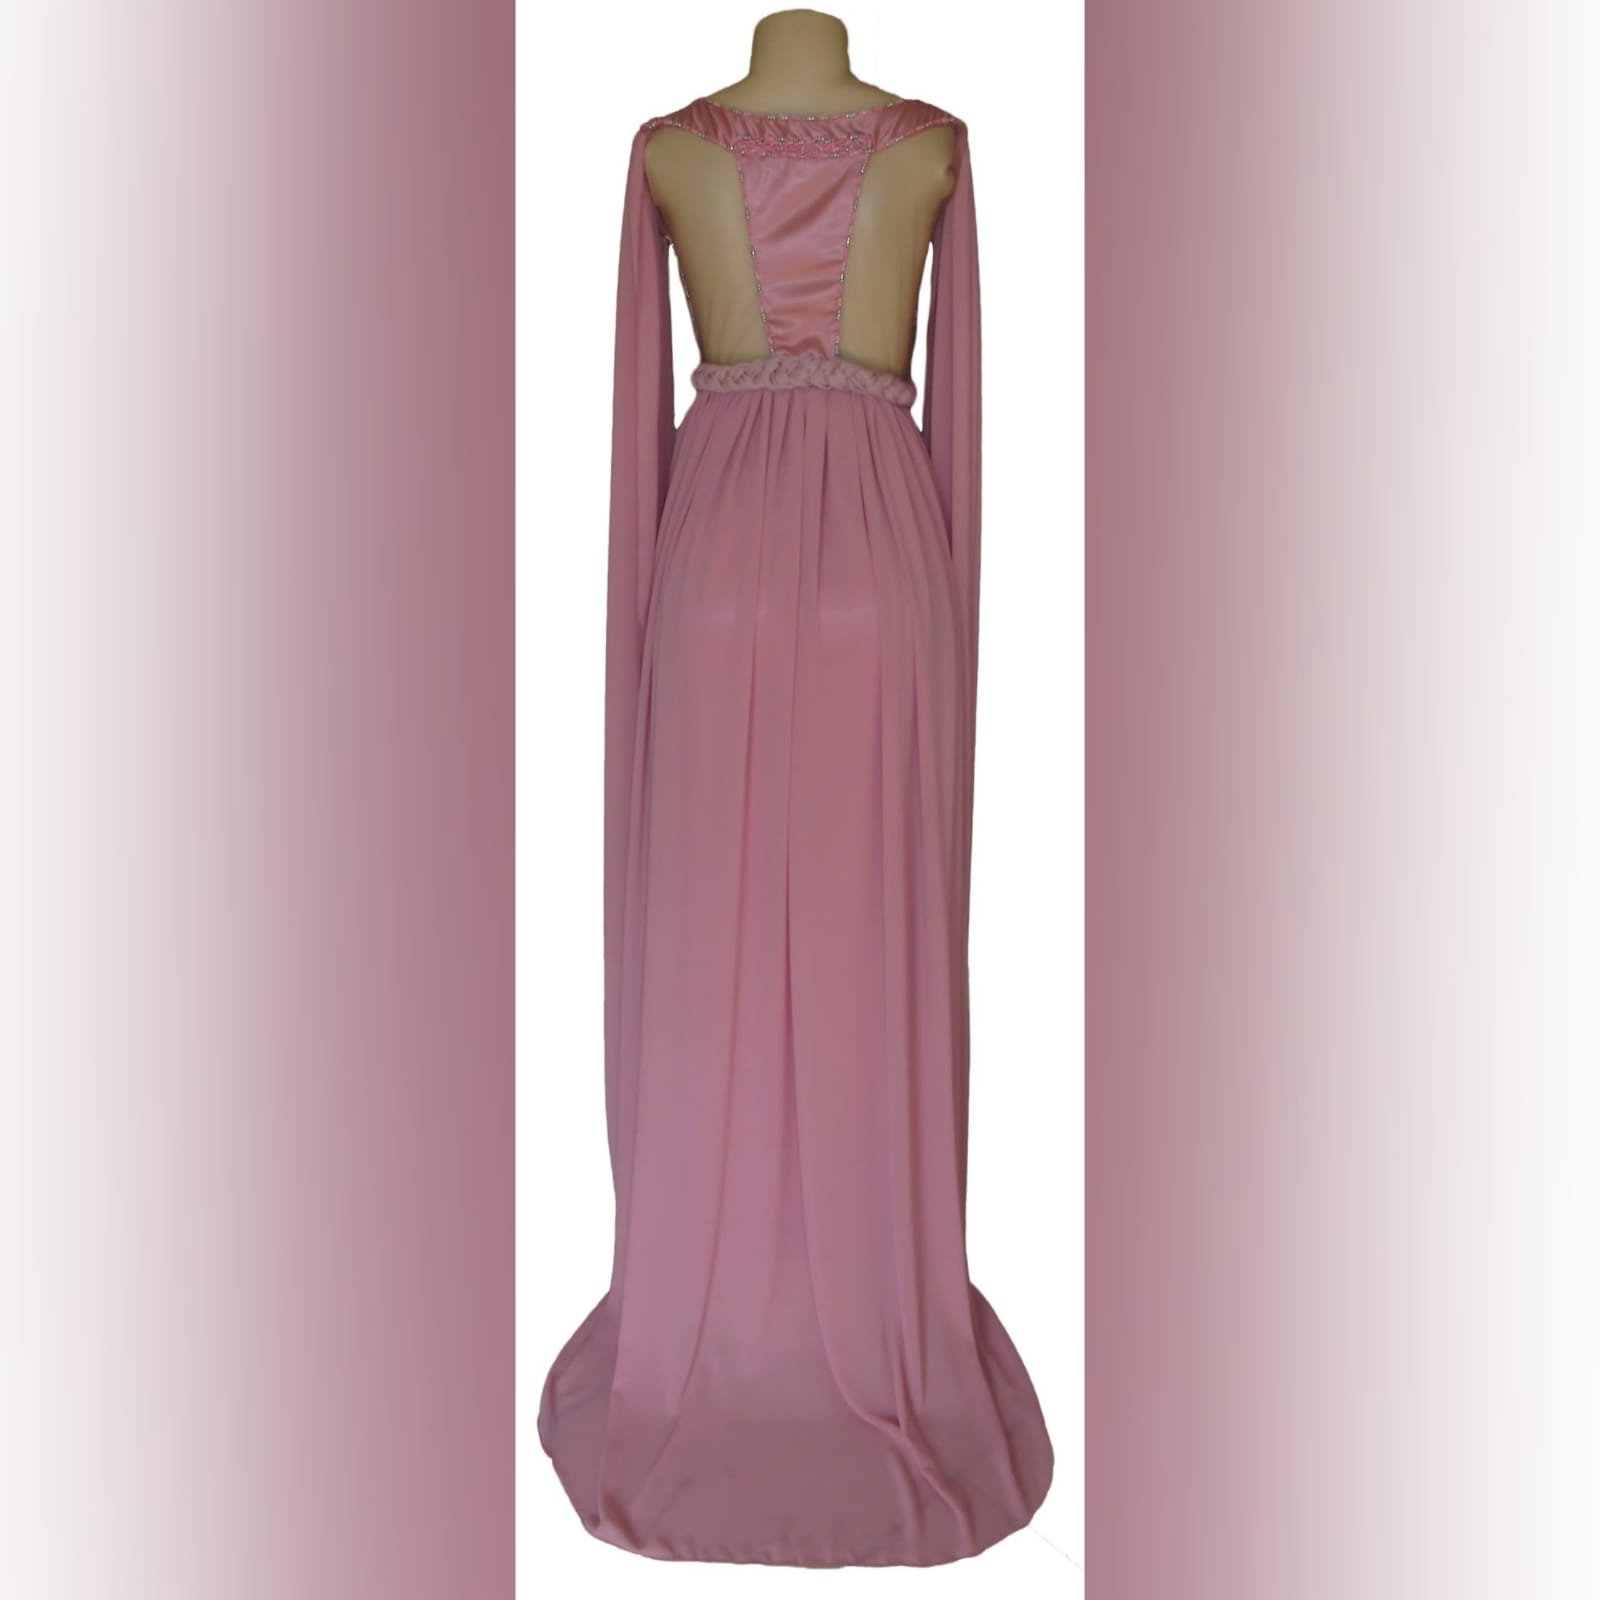 Dusty pink chiffon beaded prom dress 5 dusty pink chiffon beaded prom dress, bateau neckline effect with an illusion back, fully beaded bodice, plaited belt detail with a slit and a train. Shoulders with chiffon draping creating a goddess look.